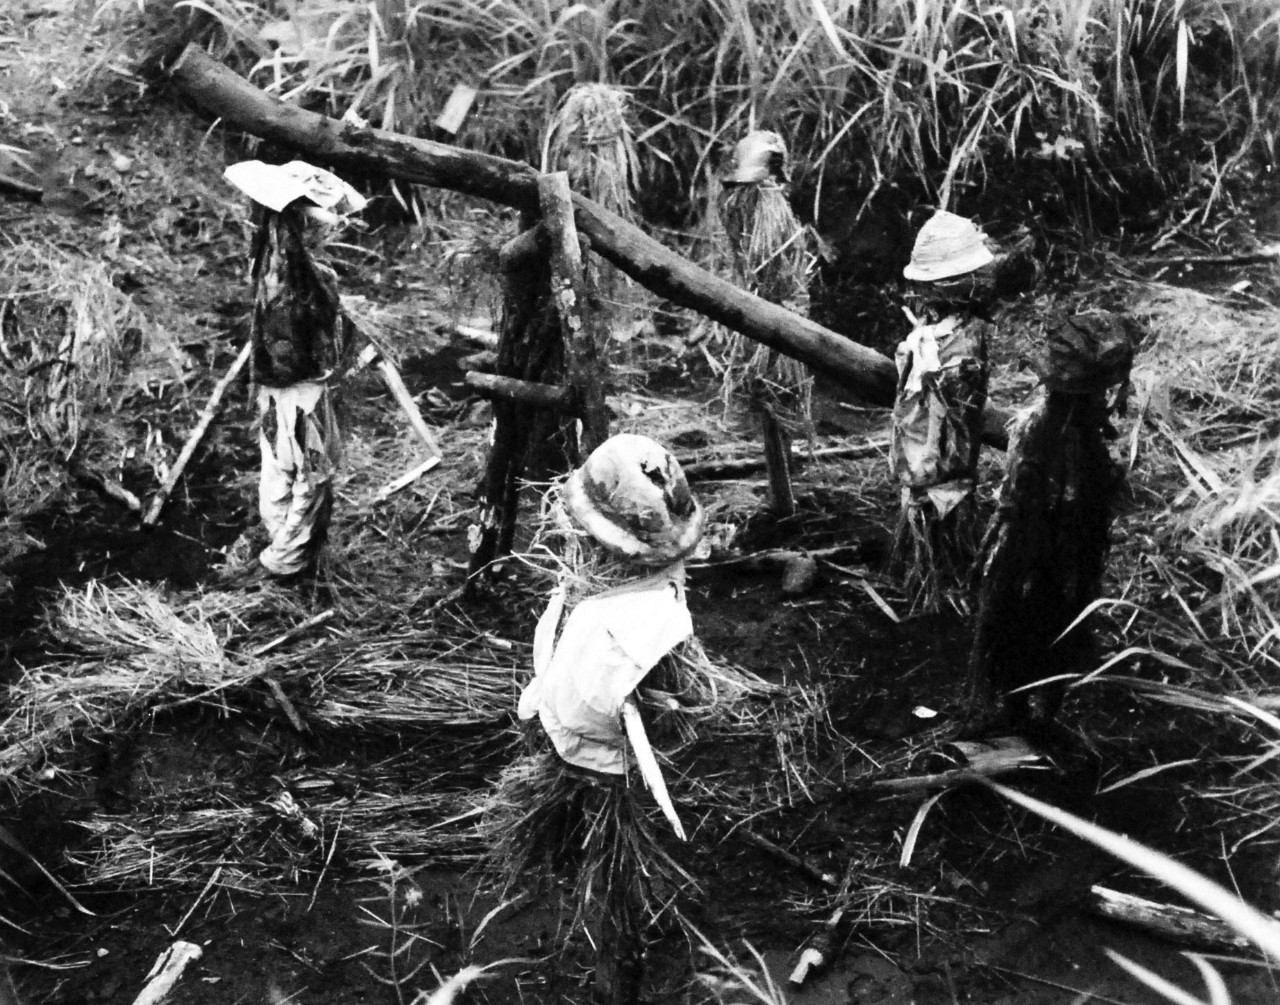 127-GW-970-71518:   Battle of Cape Gloucester, New Britain, December 1943-January 1944.  Dummy Japanese gun crew.   To make Marines think the enemy was strong in one section on Cape Gloucester, the Japanese rigged up this scarecrow gun and crew. Photographed by Howard, 15 January 1944.  Official U.S. Marine Corps Photograph, now in the collections of the National Archives.   (2014/7/9).